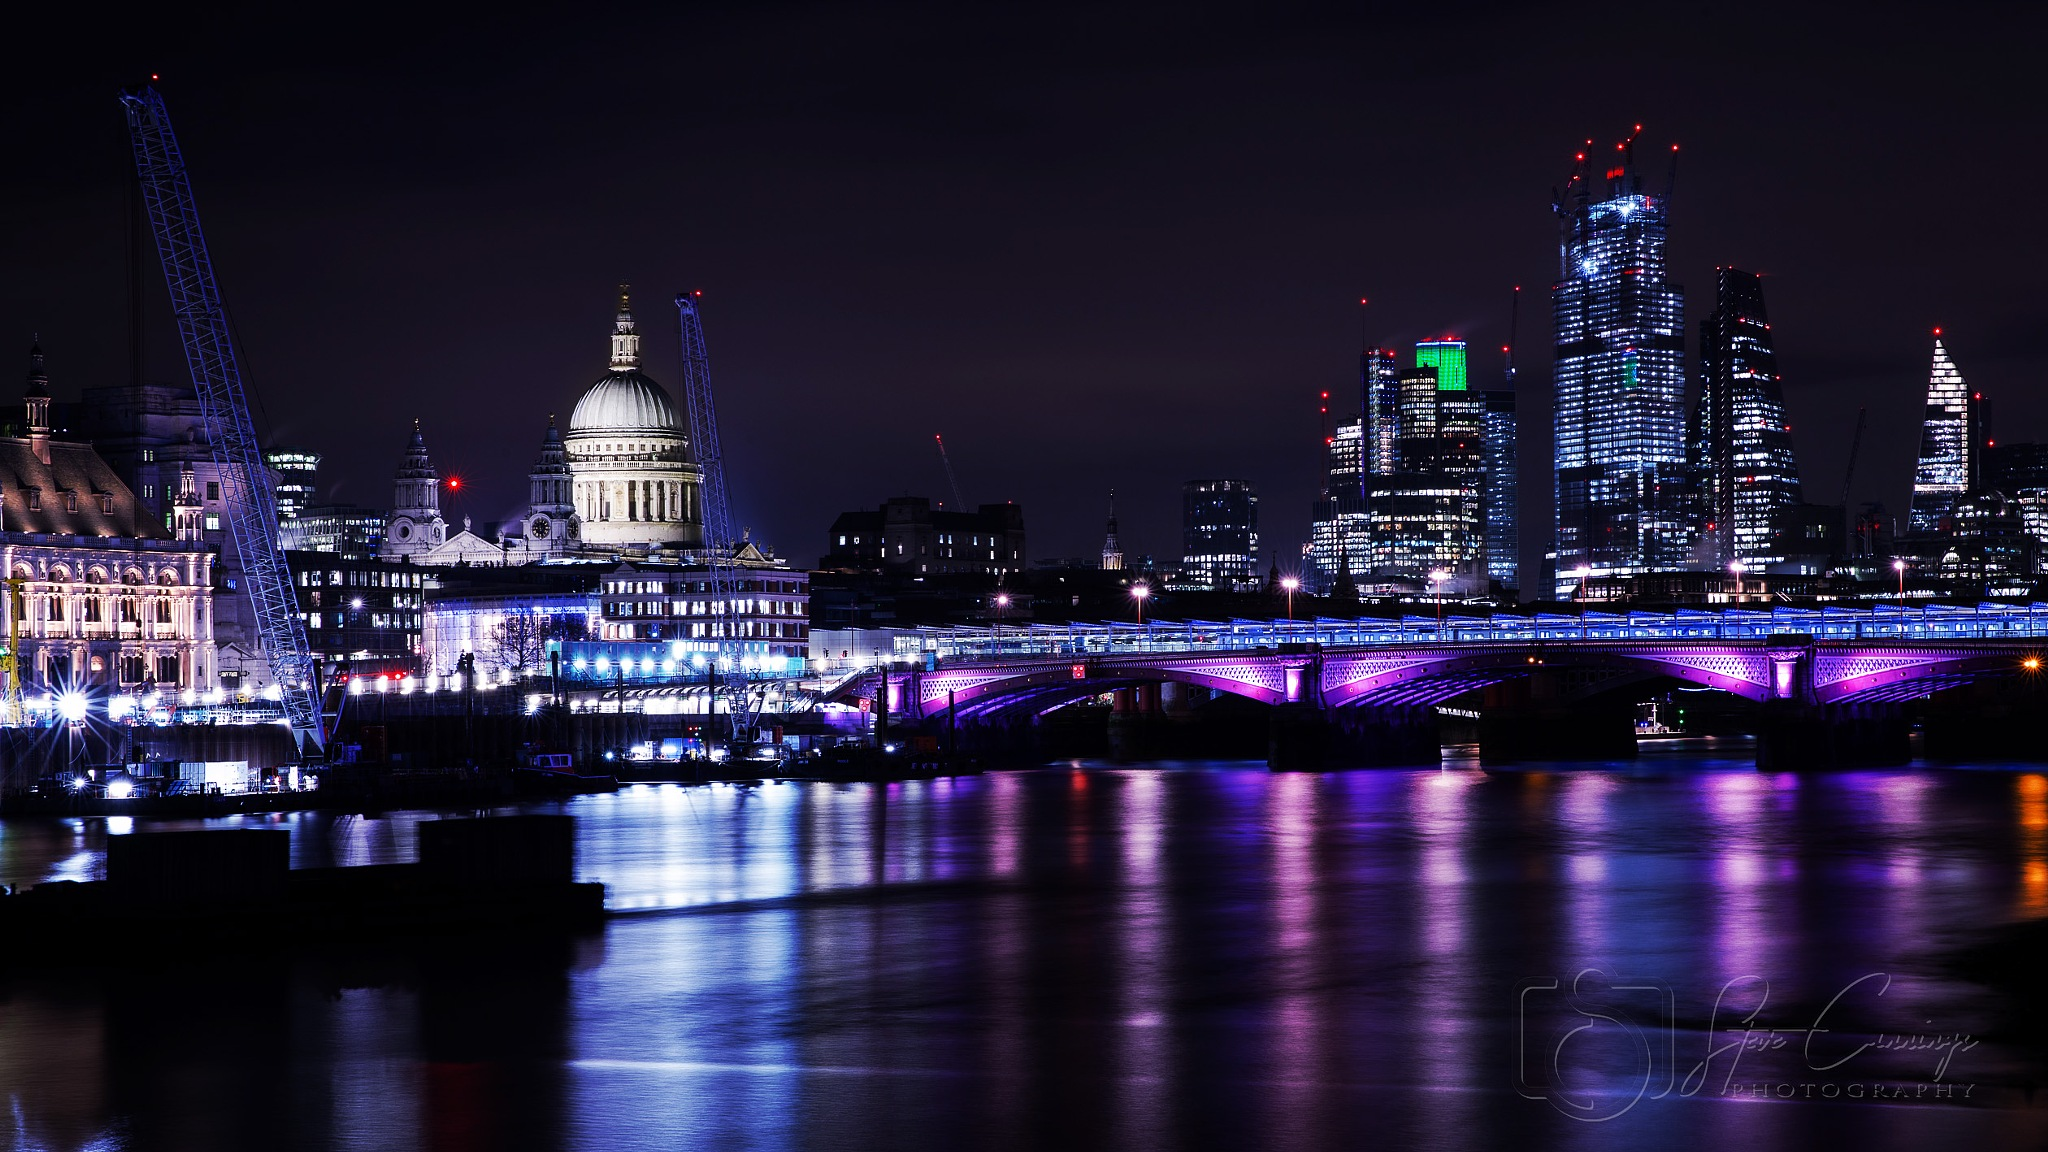 London City by Steve Cannings